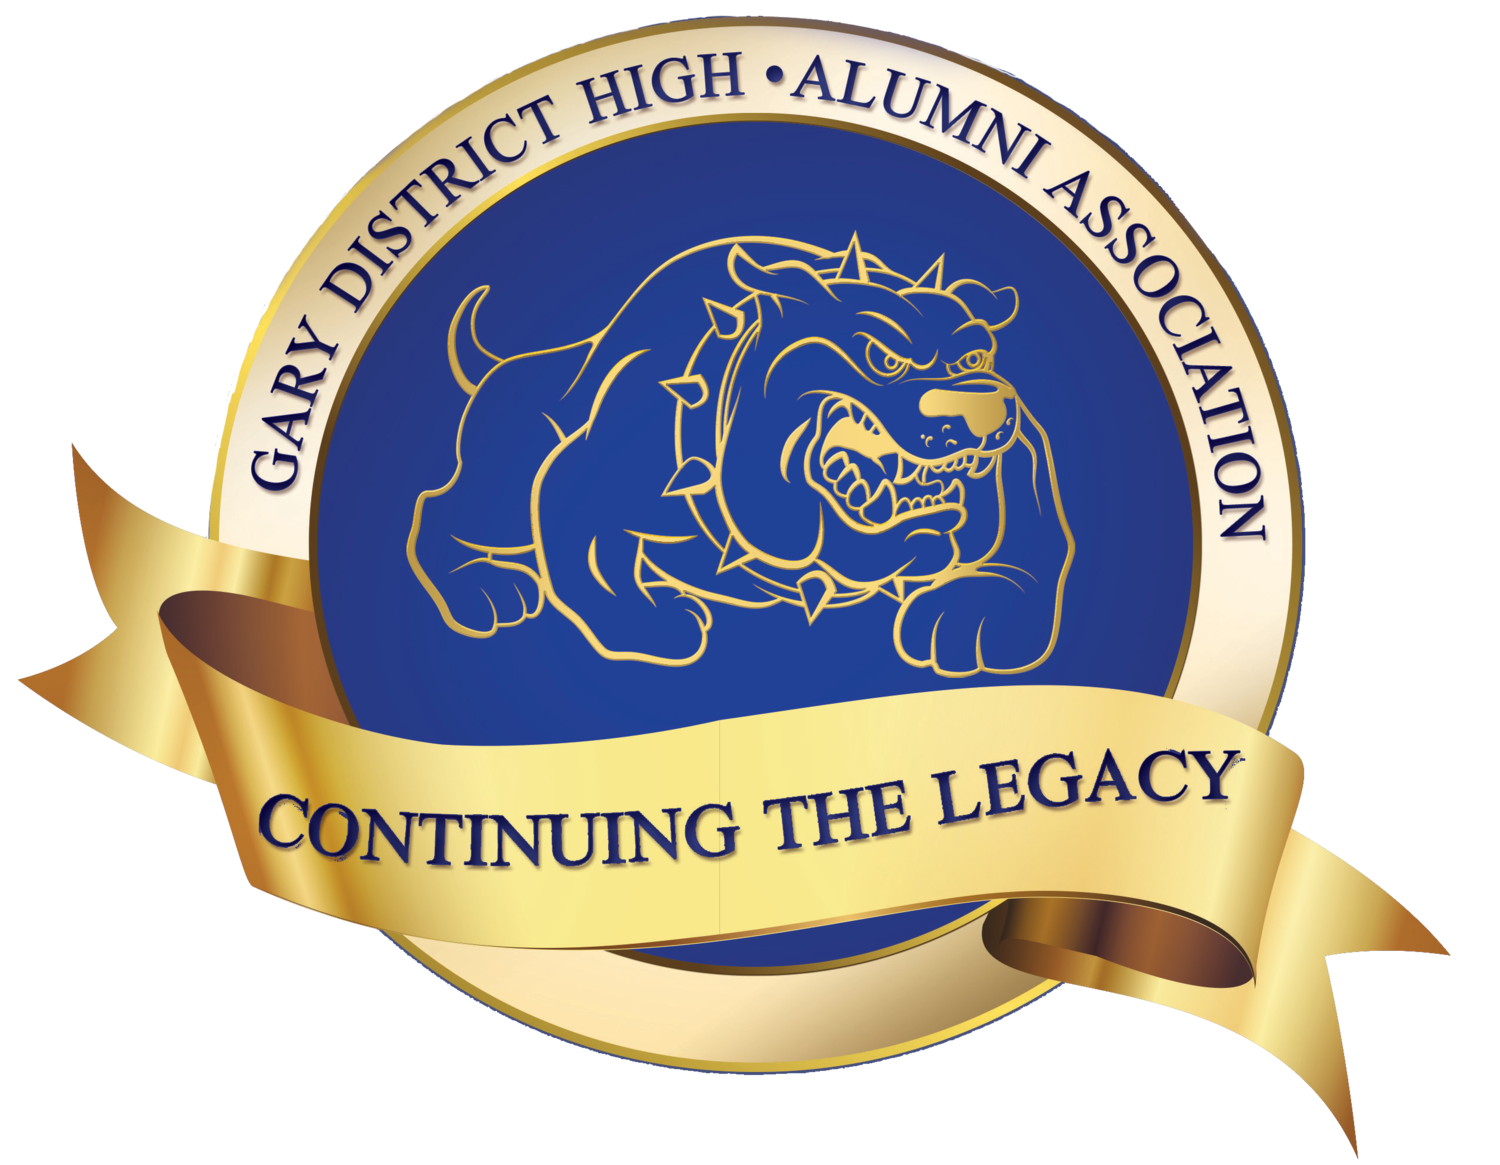 Gary District High Alumni Association